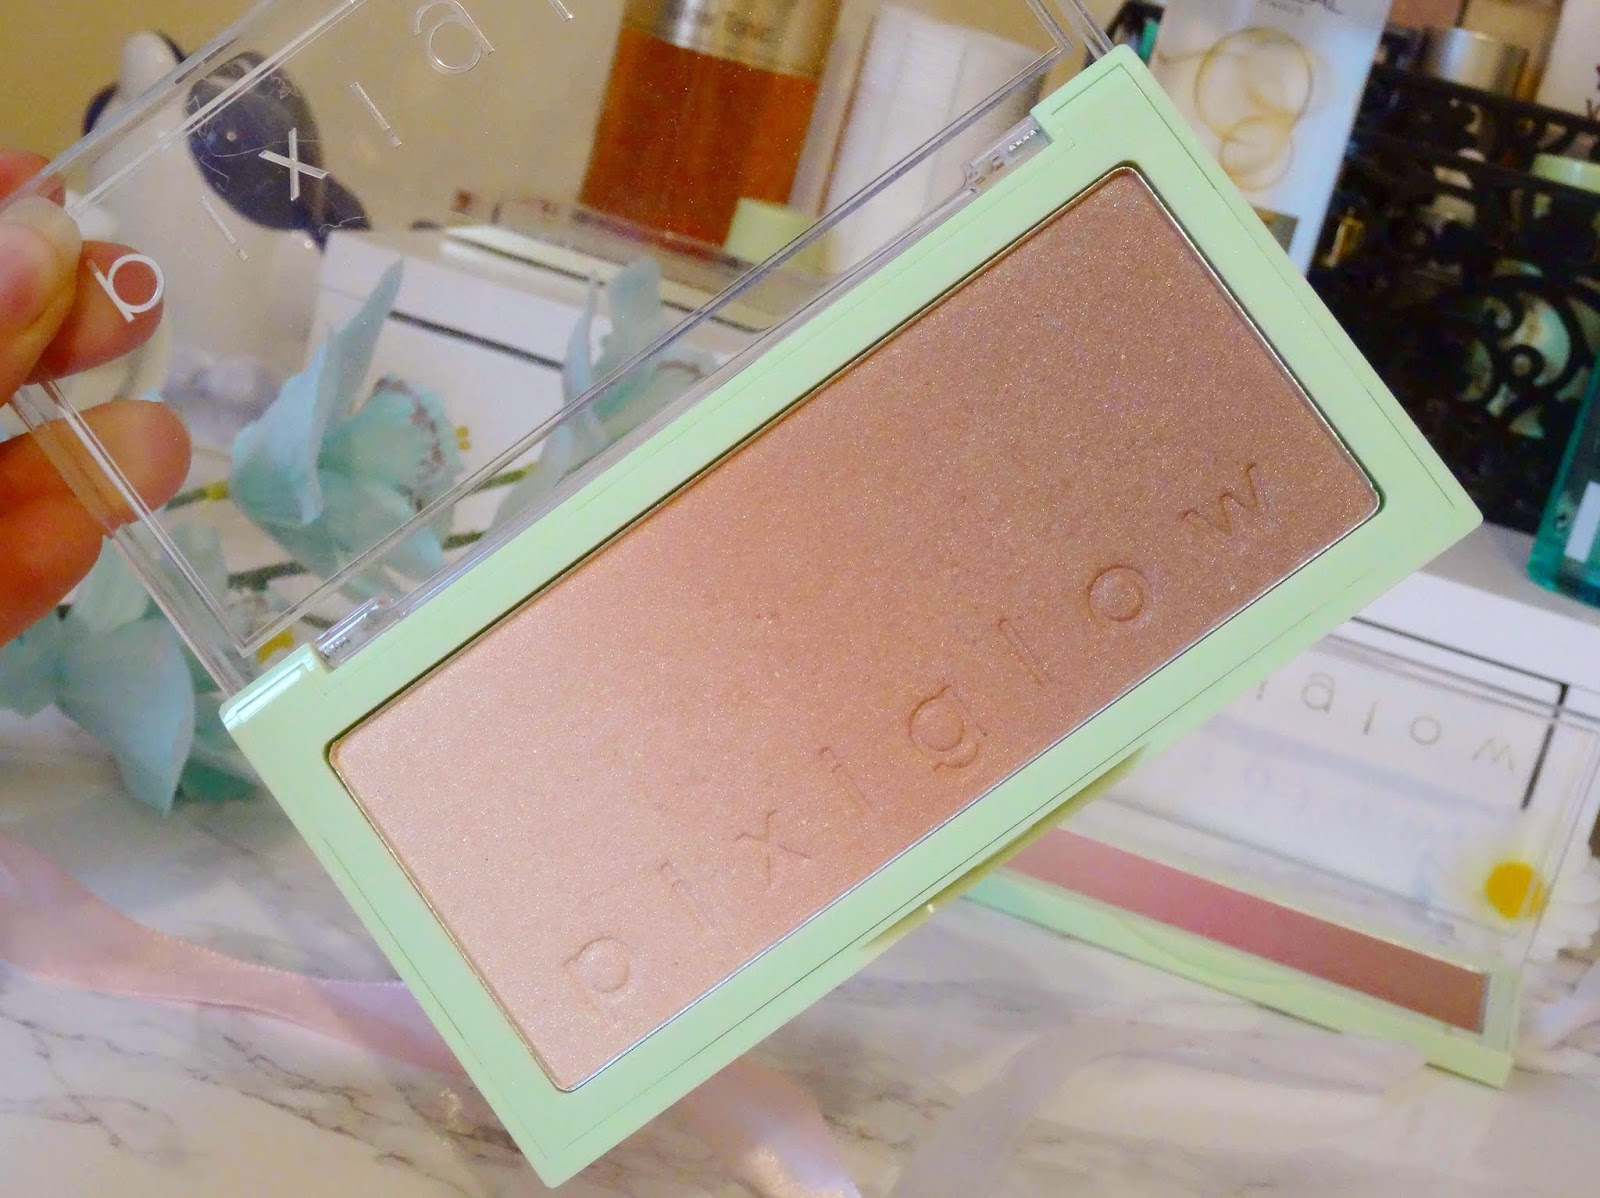 Pixi Glow Cakes in GildedBare Glow Review